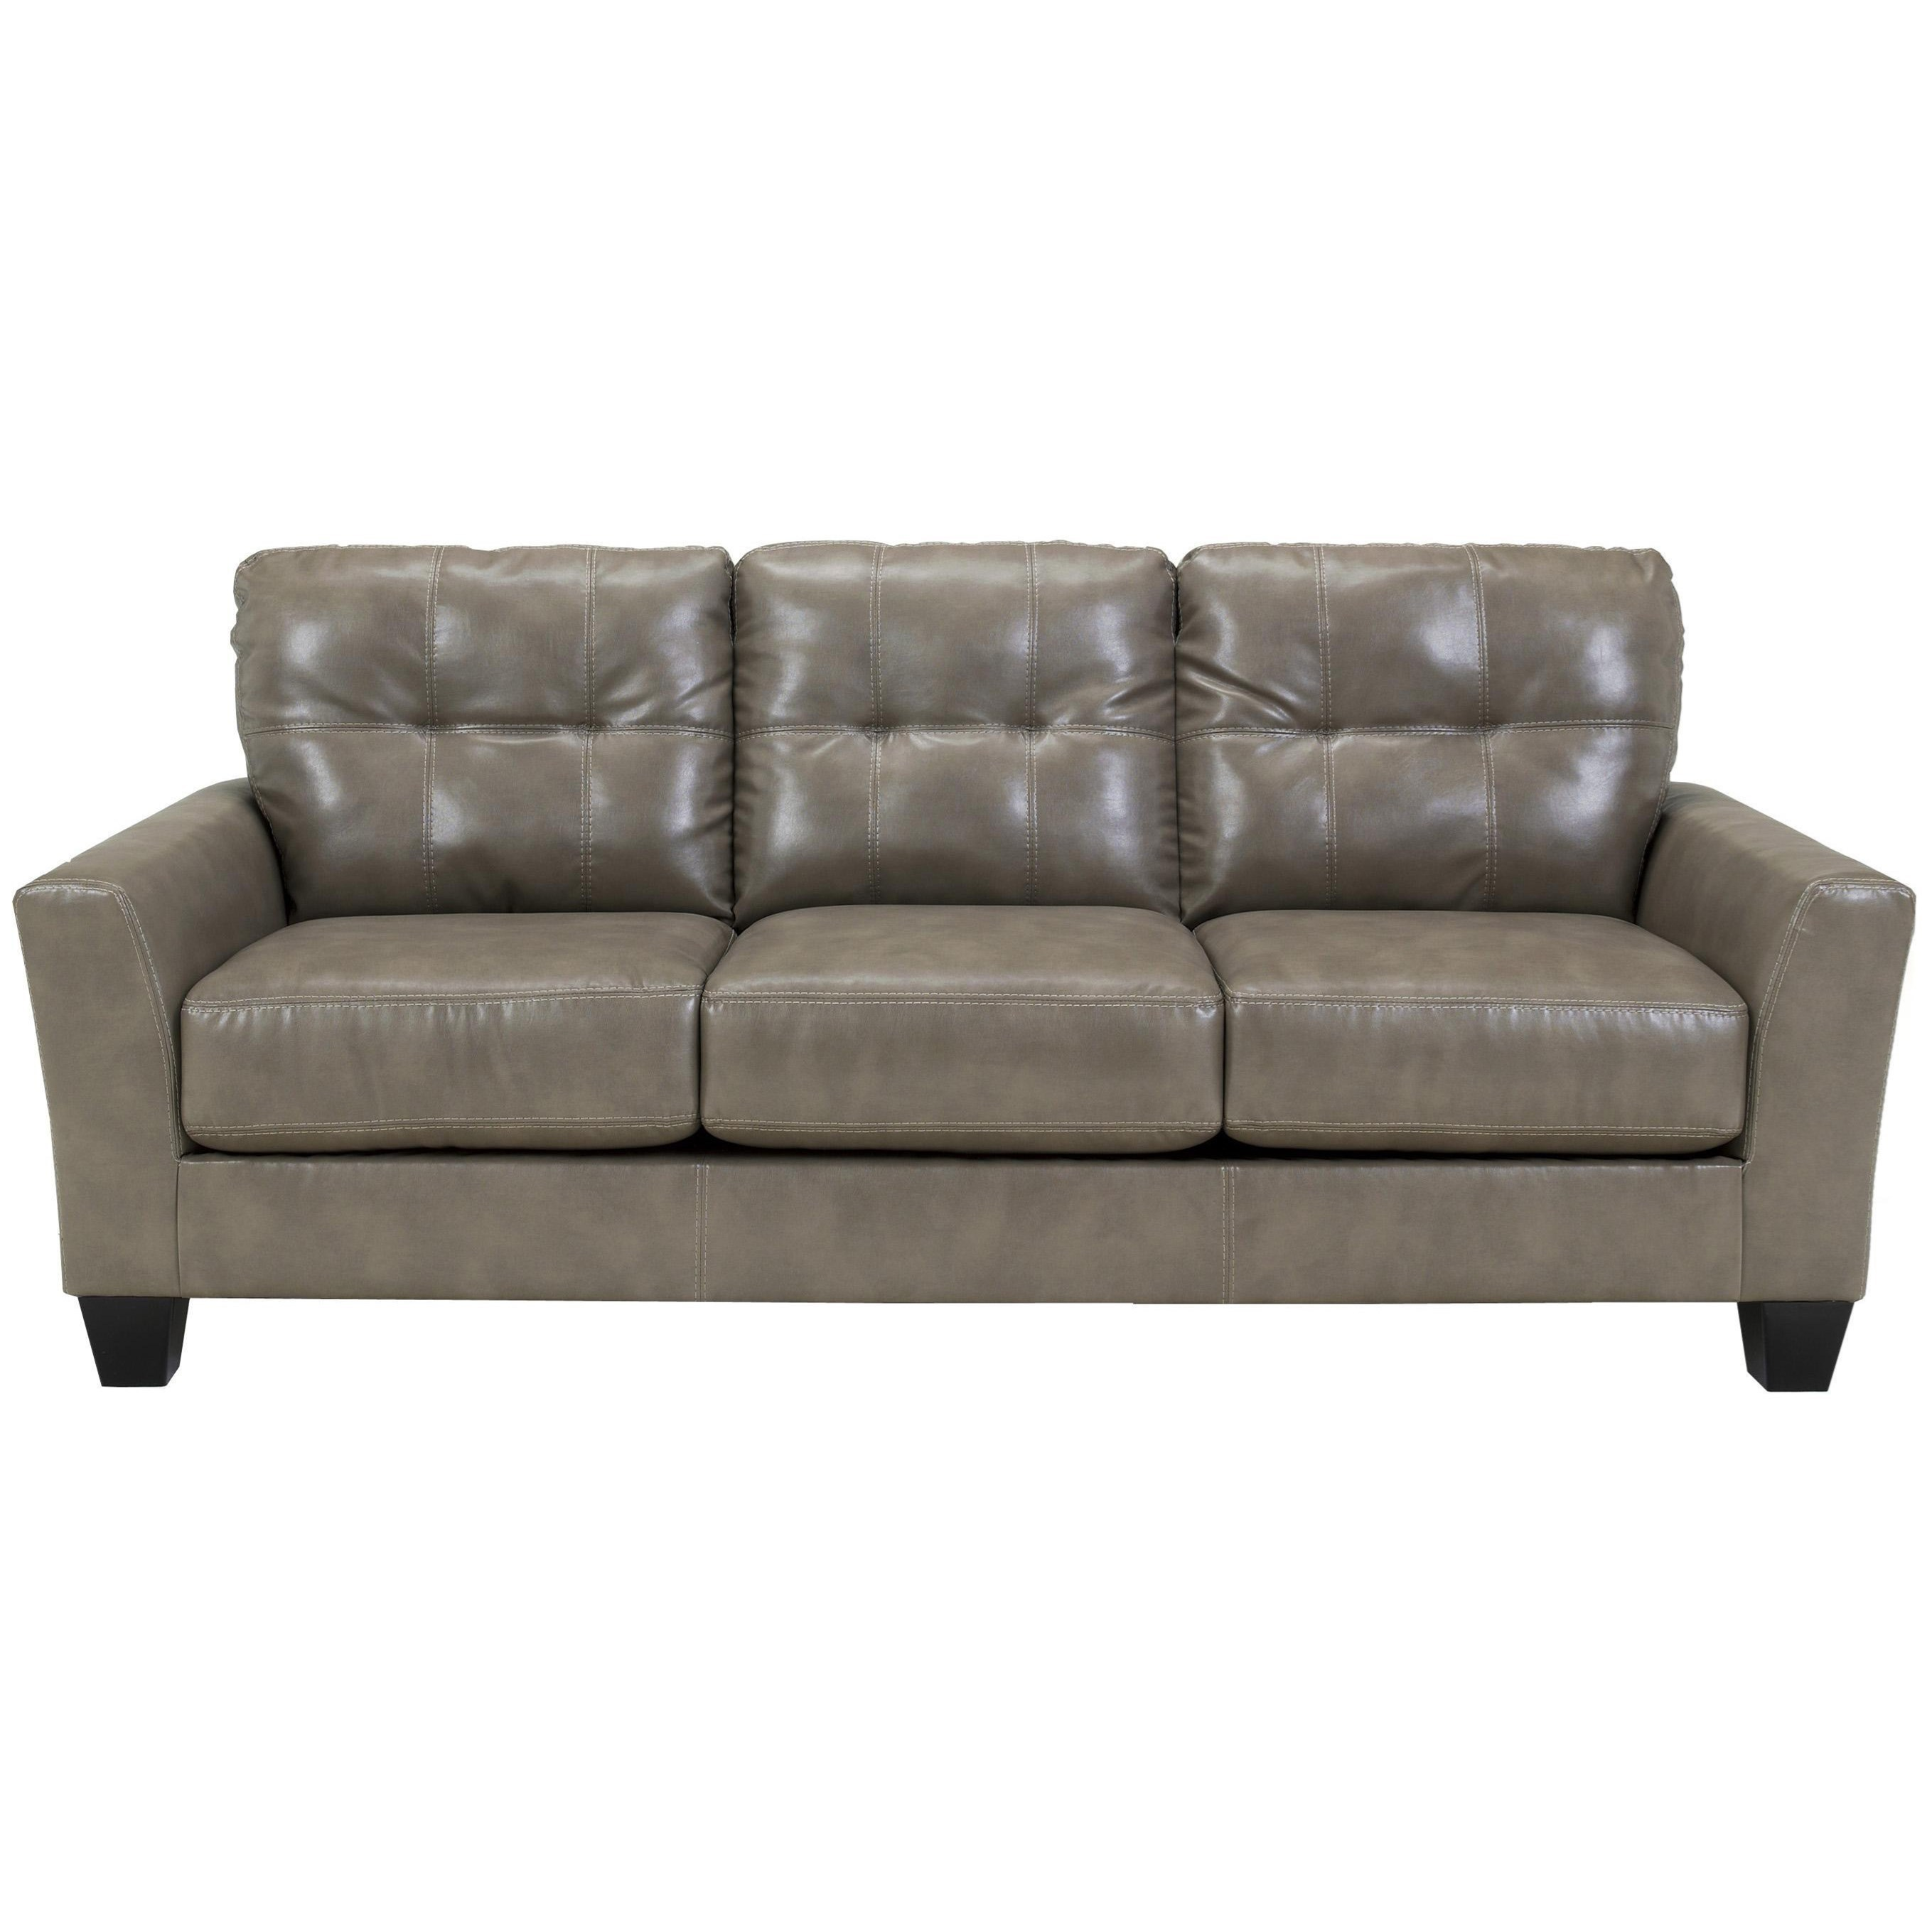 Benchcraft Paulie DuraBlendu00ae - Quarry Contemporary Sofa with Tufted Detailing - Ivan Smith ...